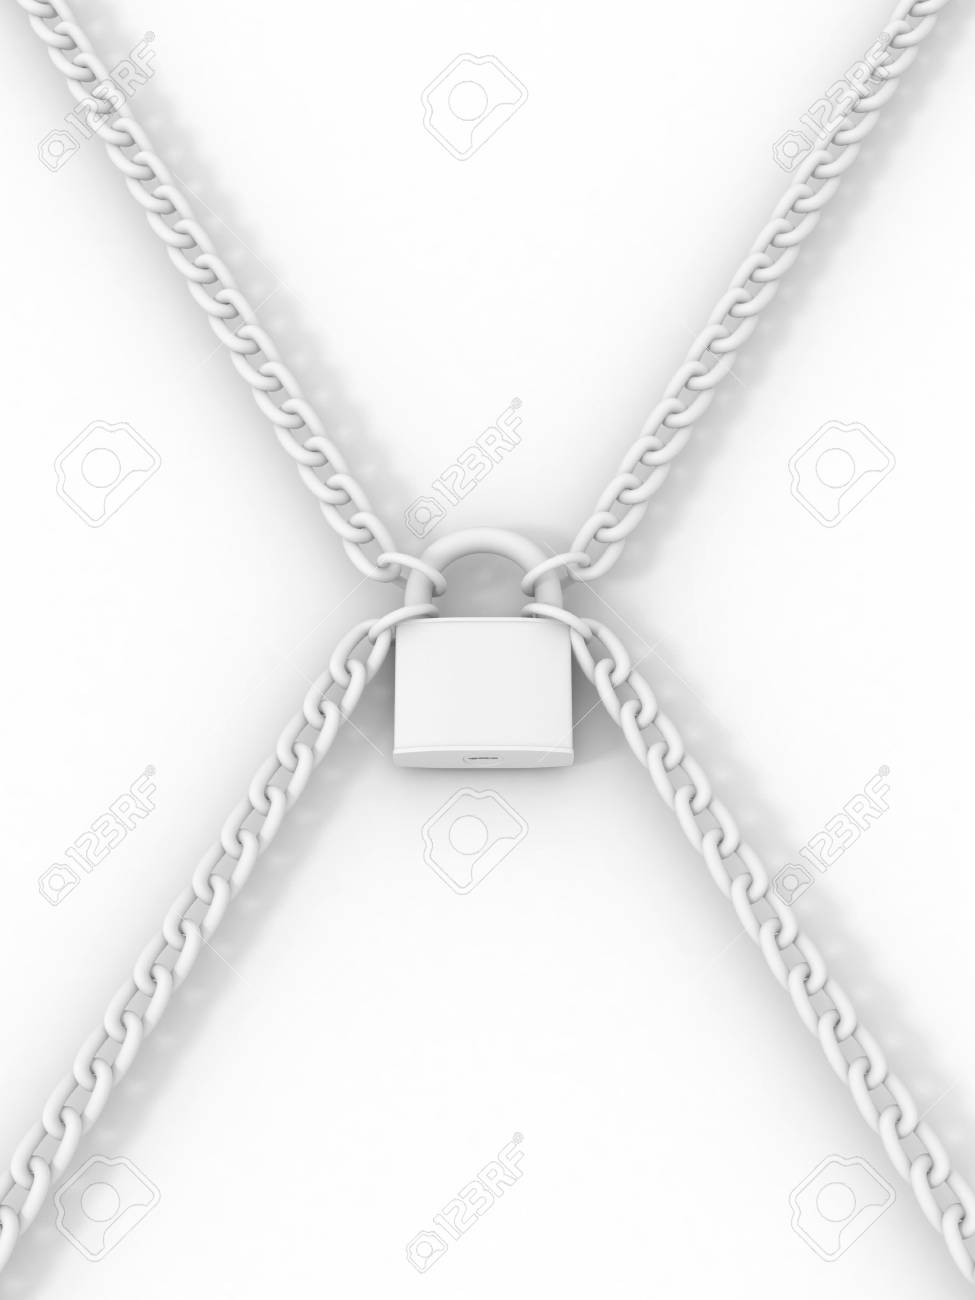 Lock, chain and keys. 3d Stock Photo - 6487548